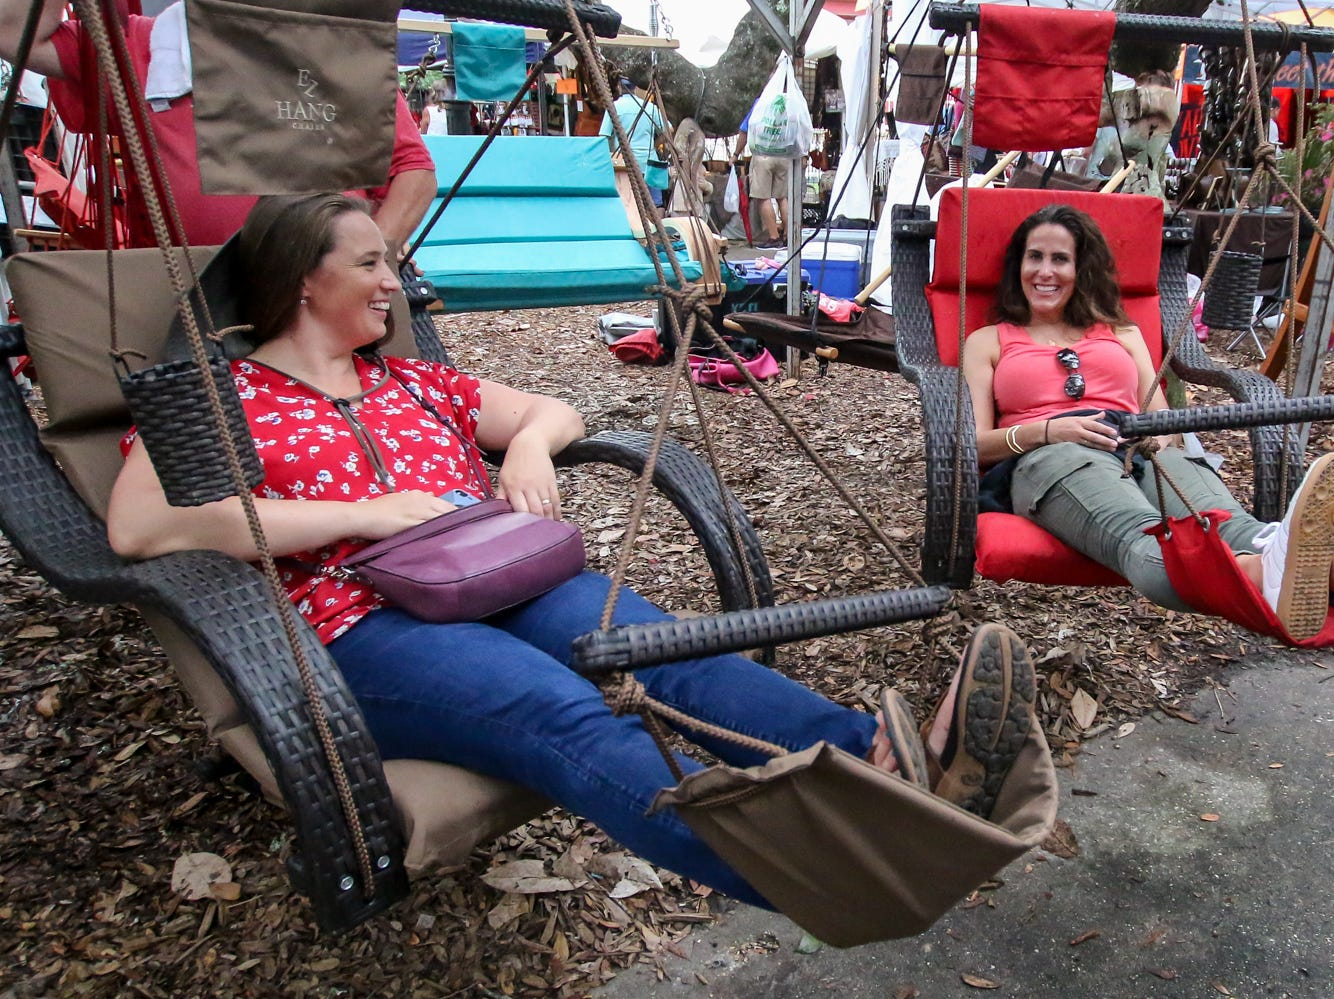 Mary Henry, of Yorktown, Va., left, and Michele Bennett, of Farmington, Utah, relax in a couple of swings during the first day of the 41st annual Pensacola Seafood Festival in downtown Pensacola on Friday, September 28, 2018. The festival, which features multiple food vendors, artists, cooking demonstrations, live music and more, is free to enter and continues through Sunday.